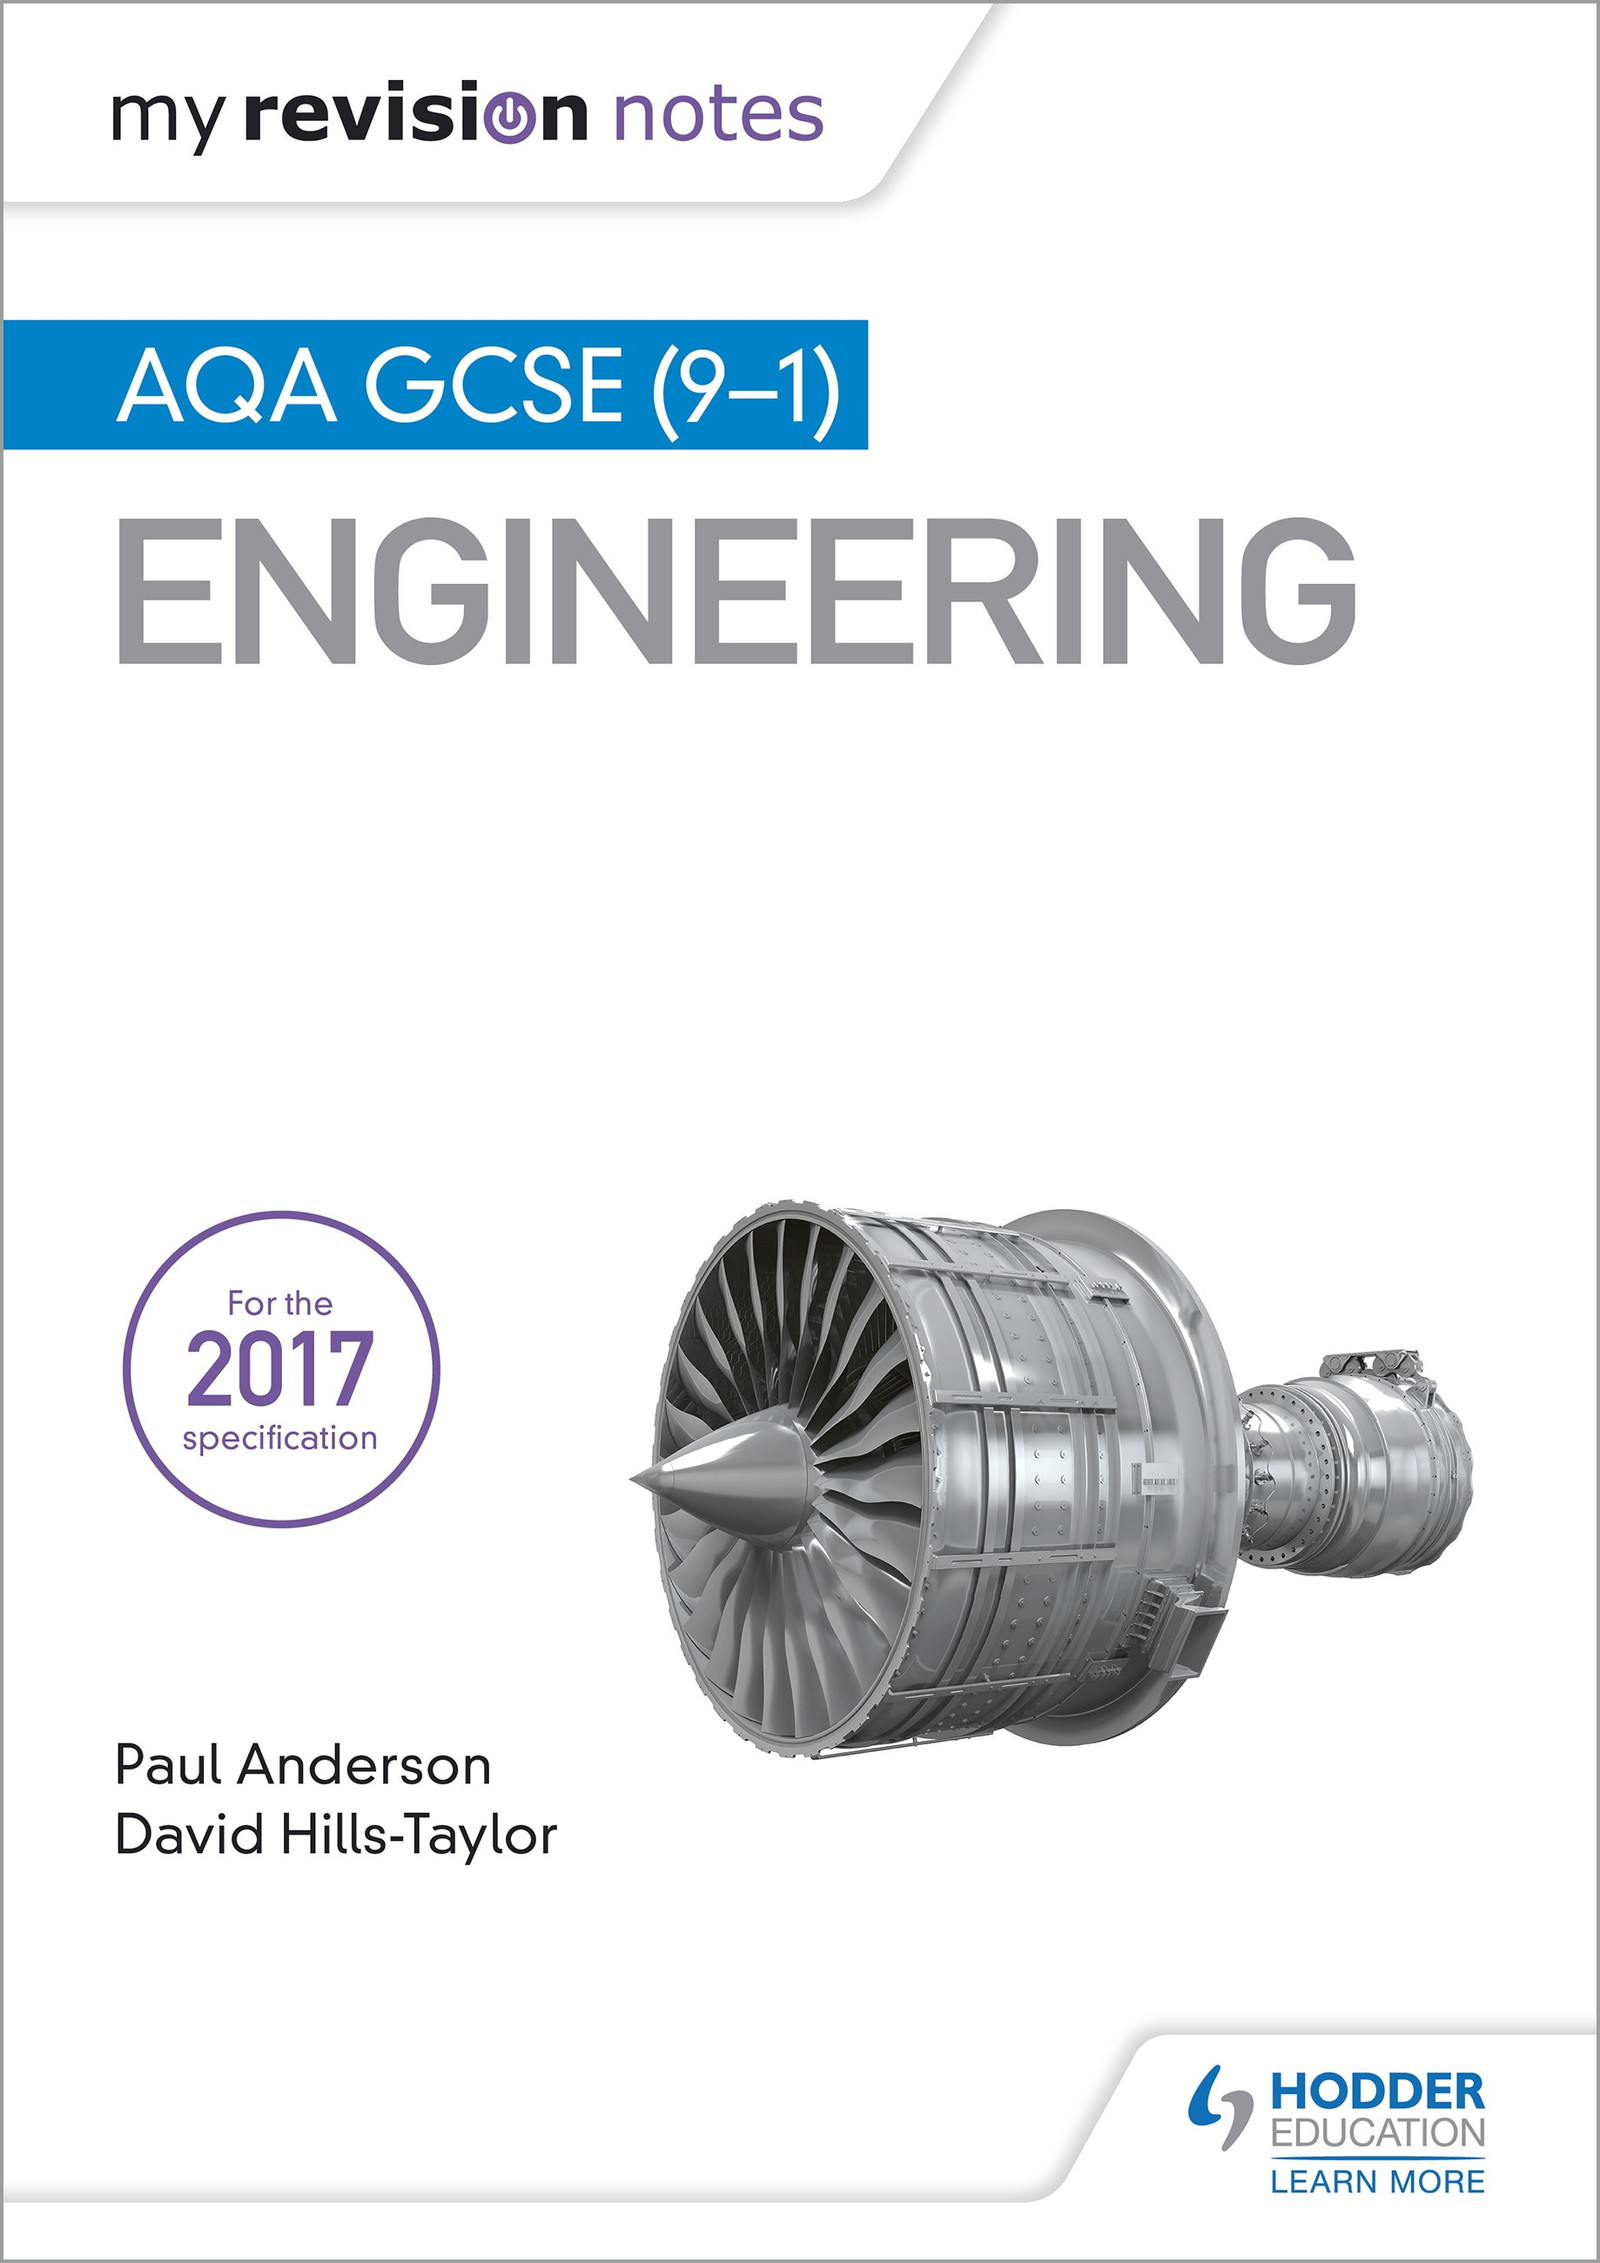 My Revision Notes: AQA GCSE (9-1) Engineering